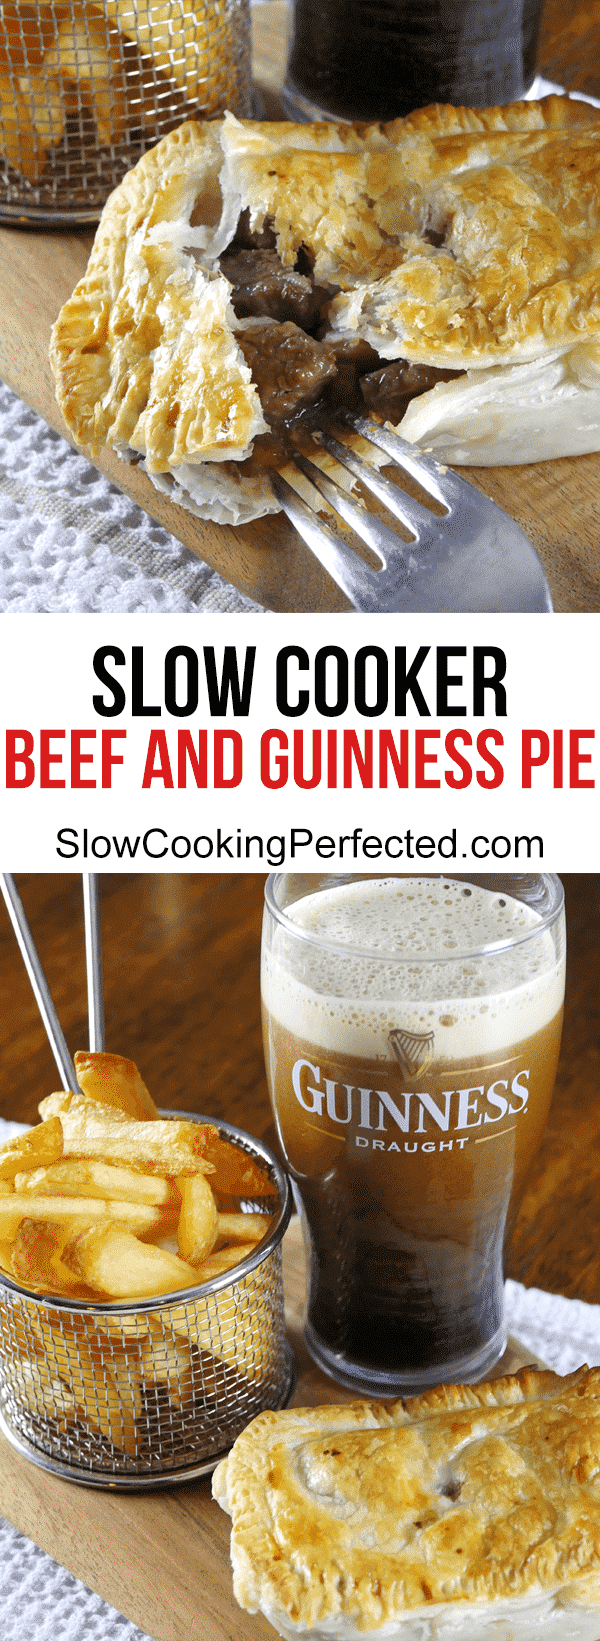 Slow Cooker Beef and Guinness Pie Filling | Recipe | Beef ...